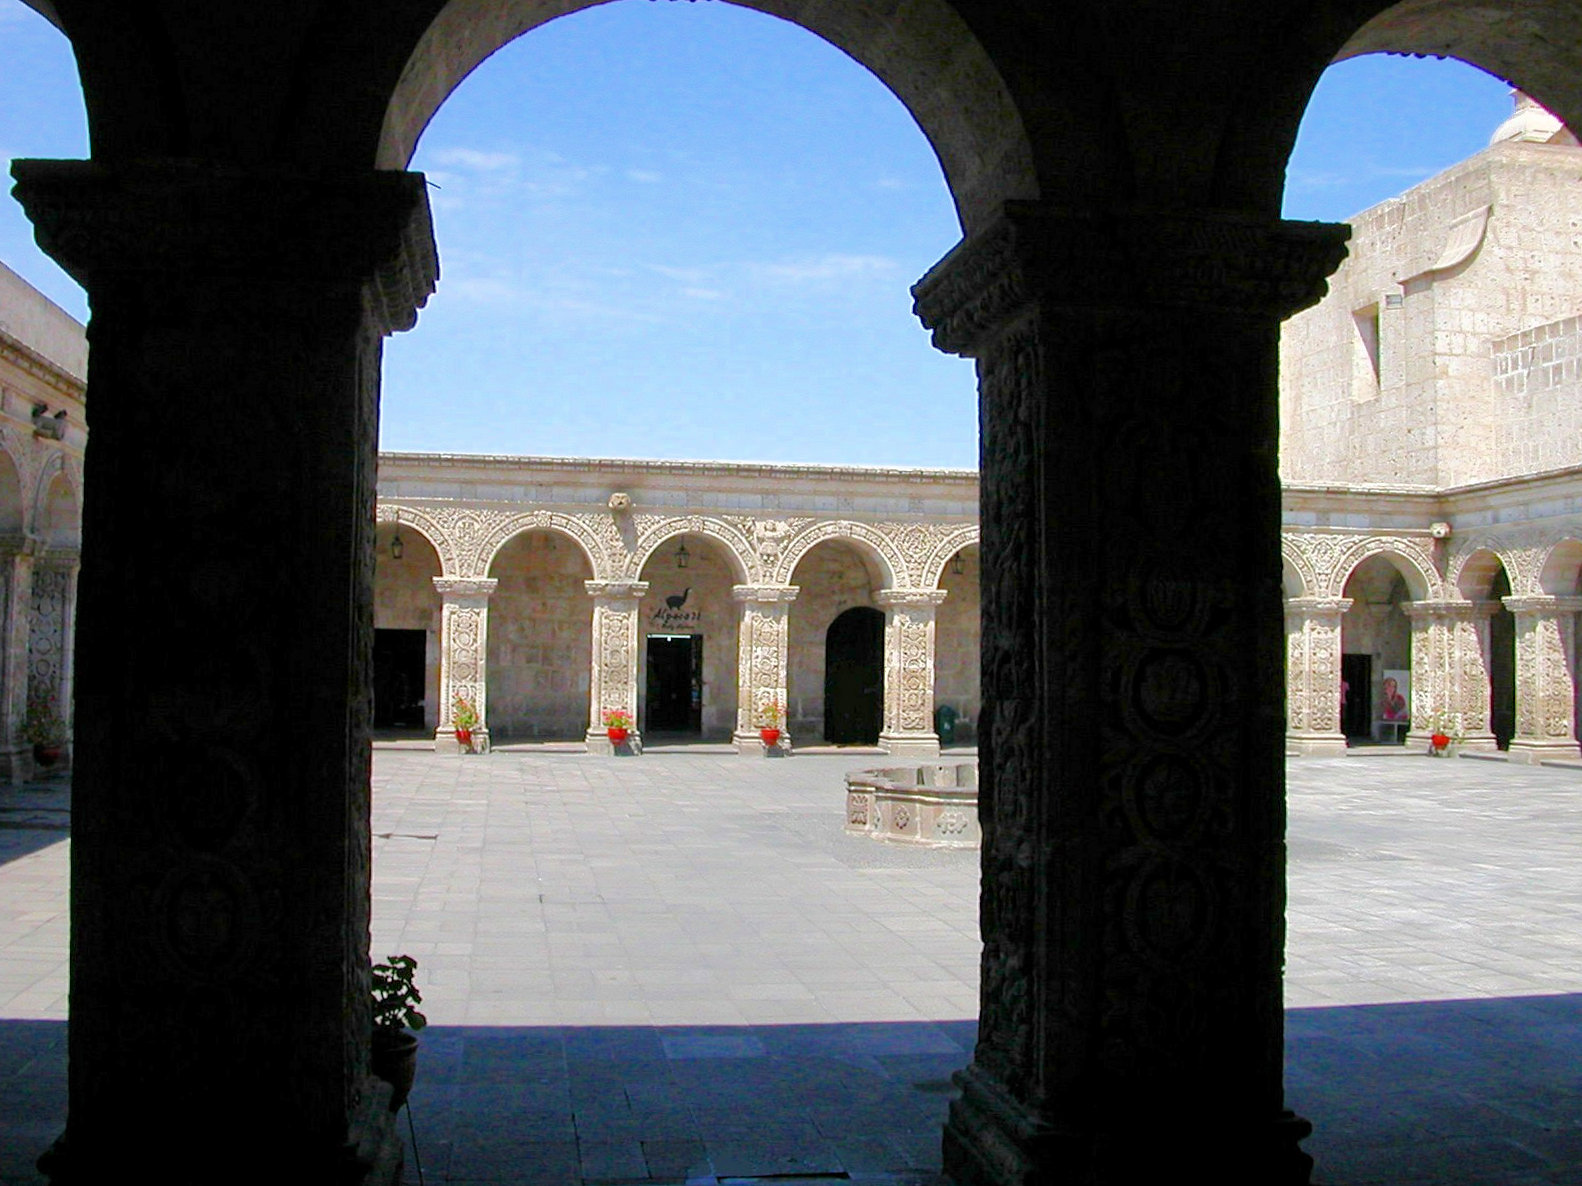 One of many large colonial properties in Arequipa's historic center